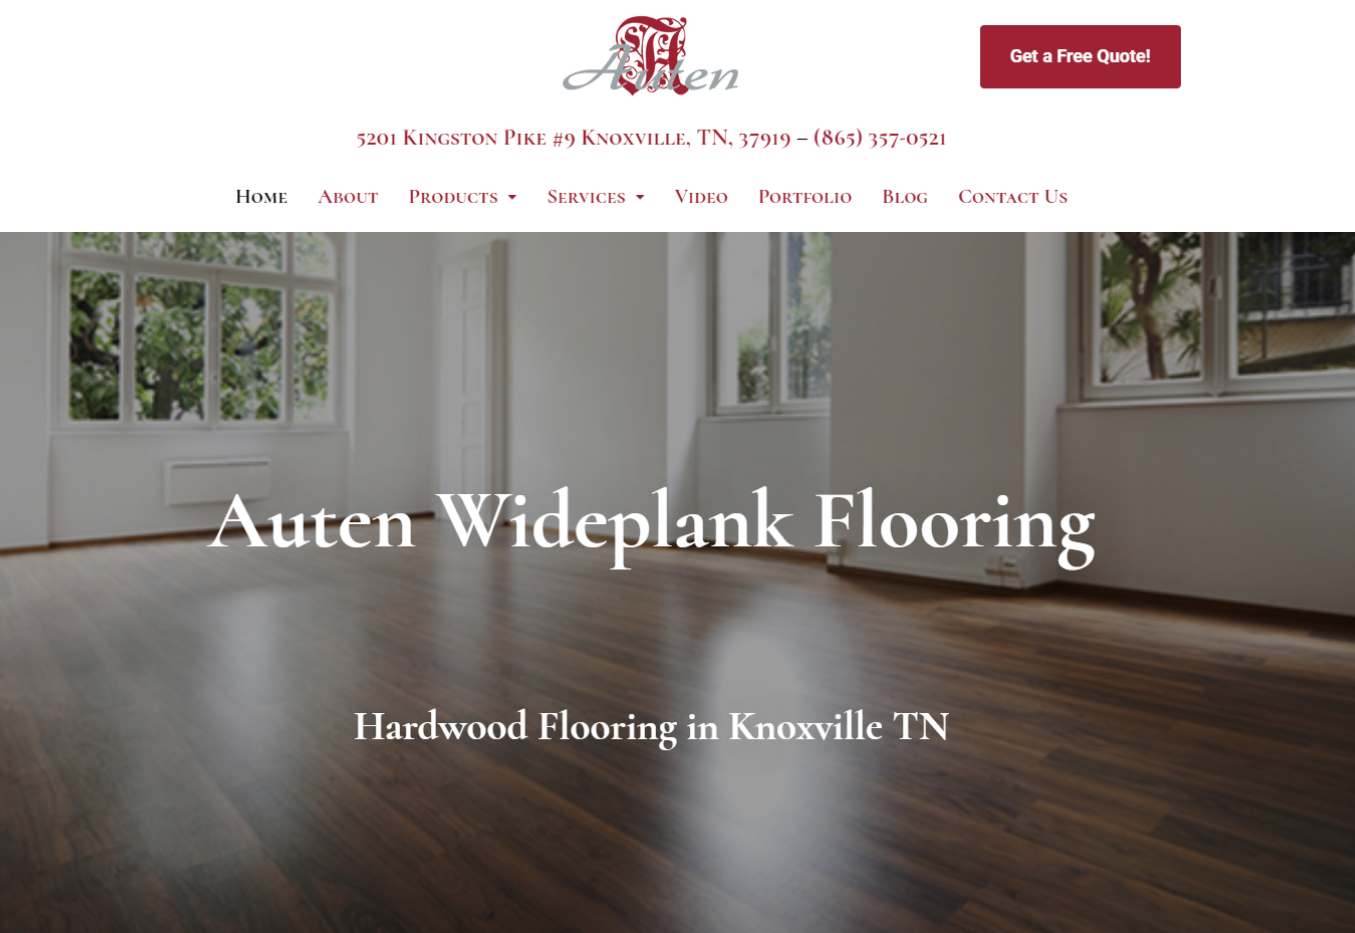 Website Design Project - Auten Wideplank Flooring